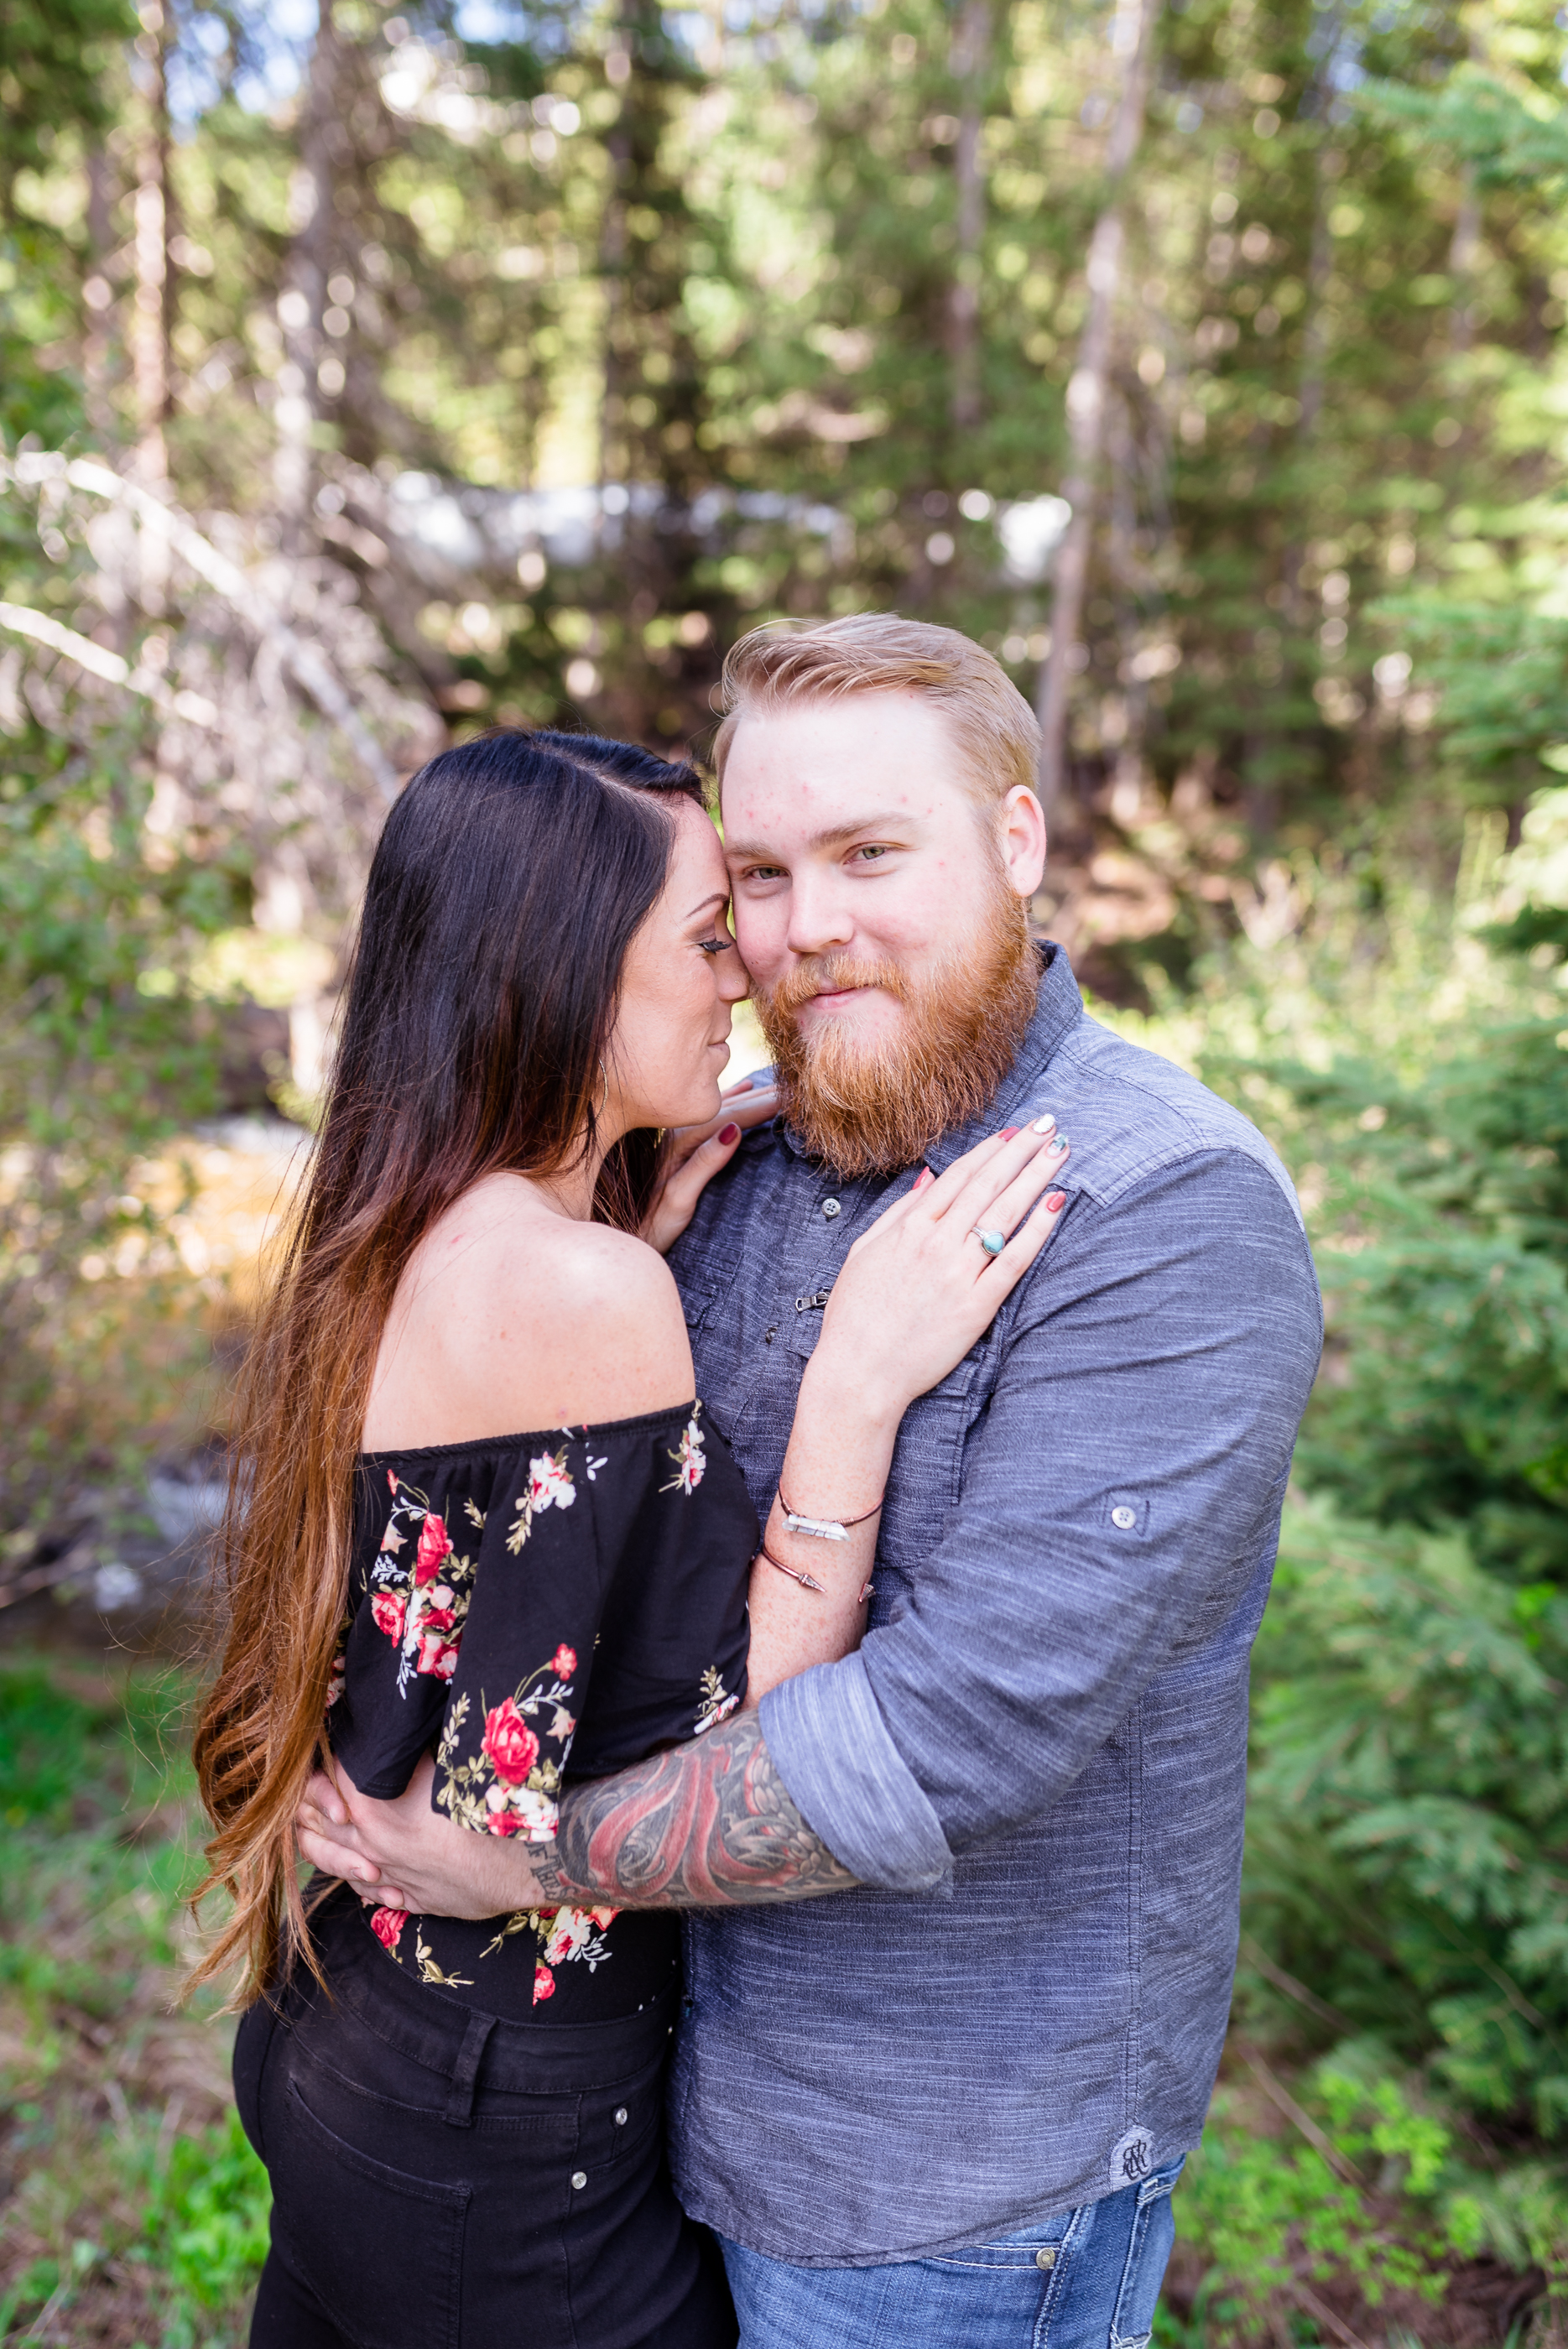 Snuggling her man. Morning engagement session in the Salt Lake mountains. Engagement session at Jordan Pines Campground in Big Cottonwood Canyon.